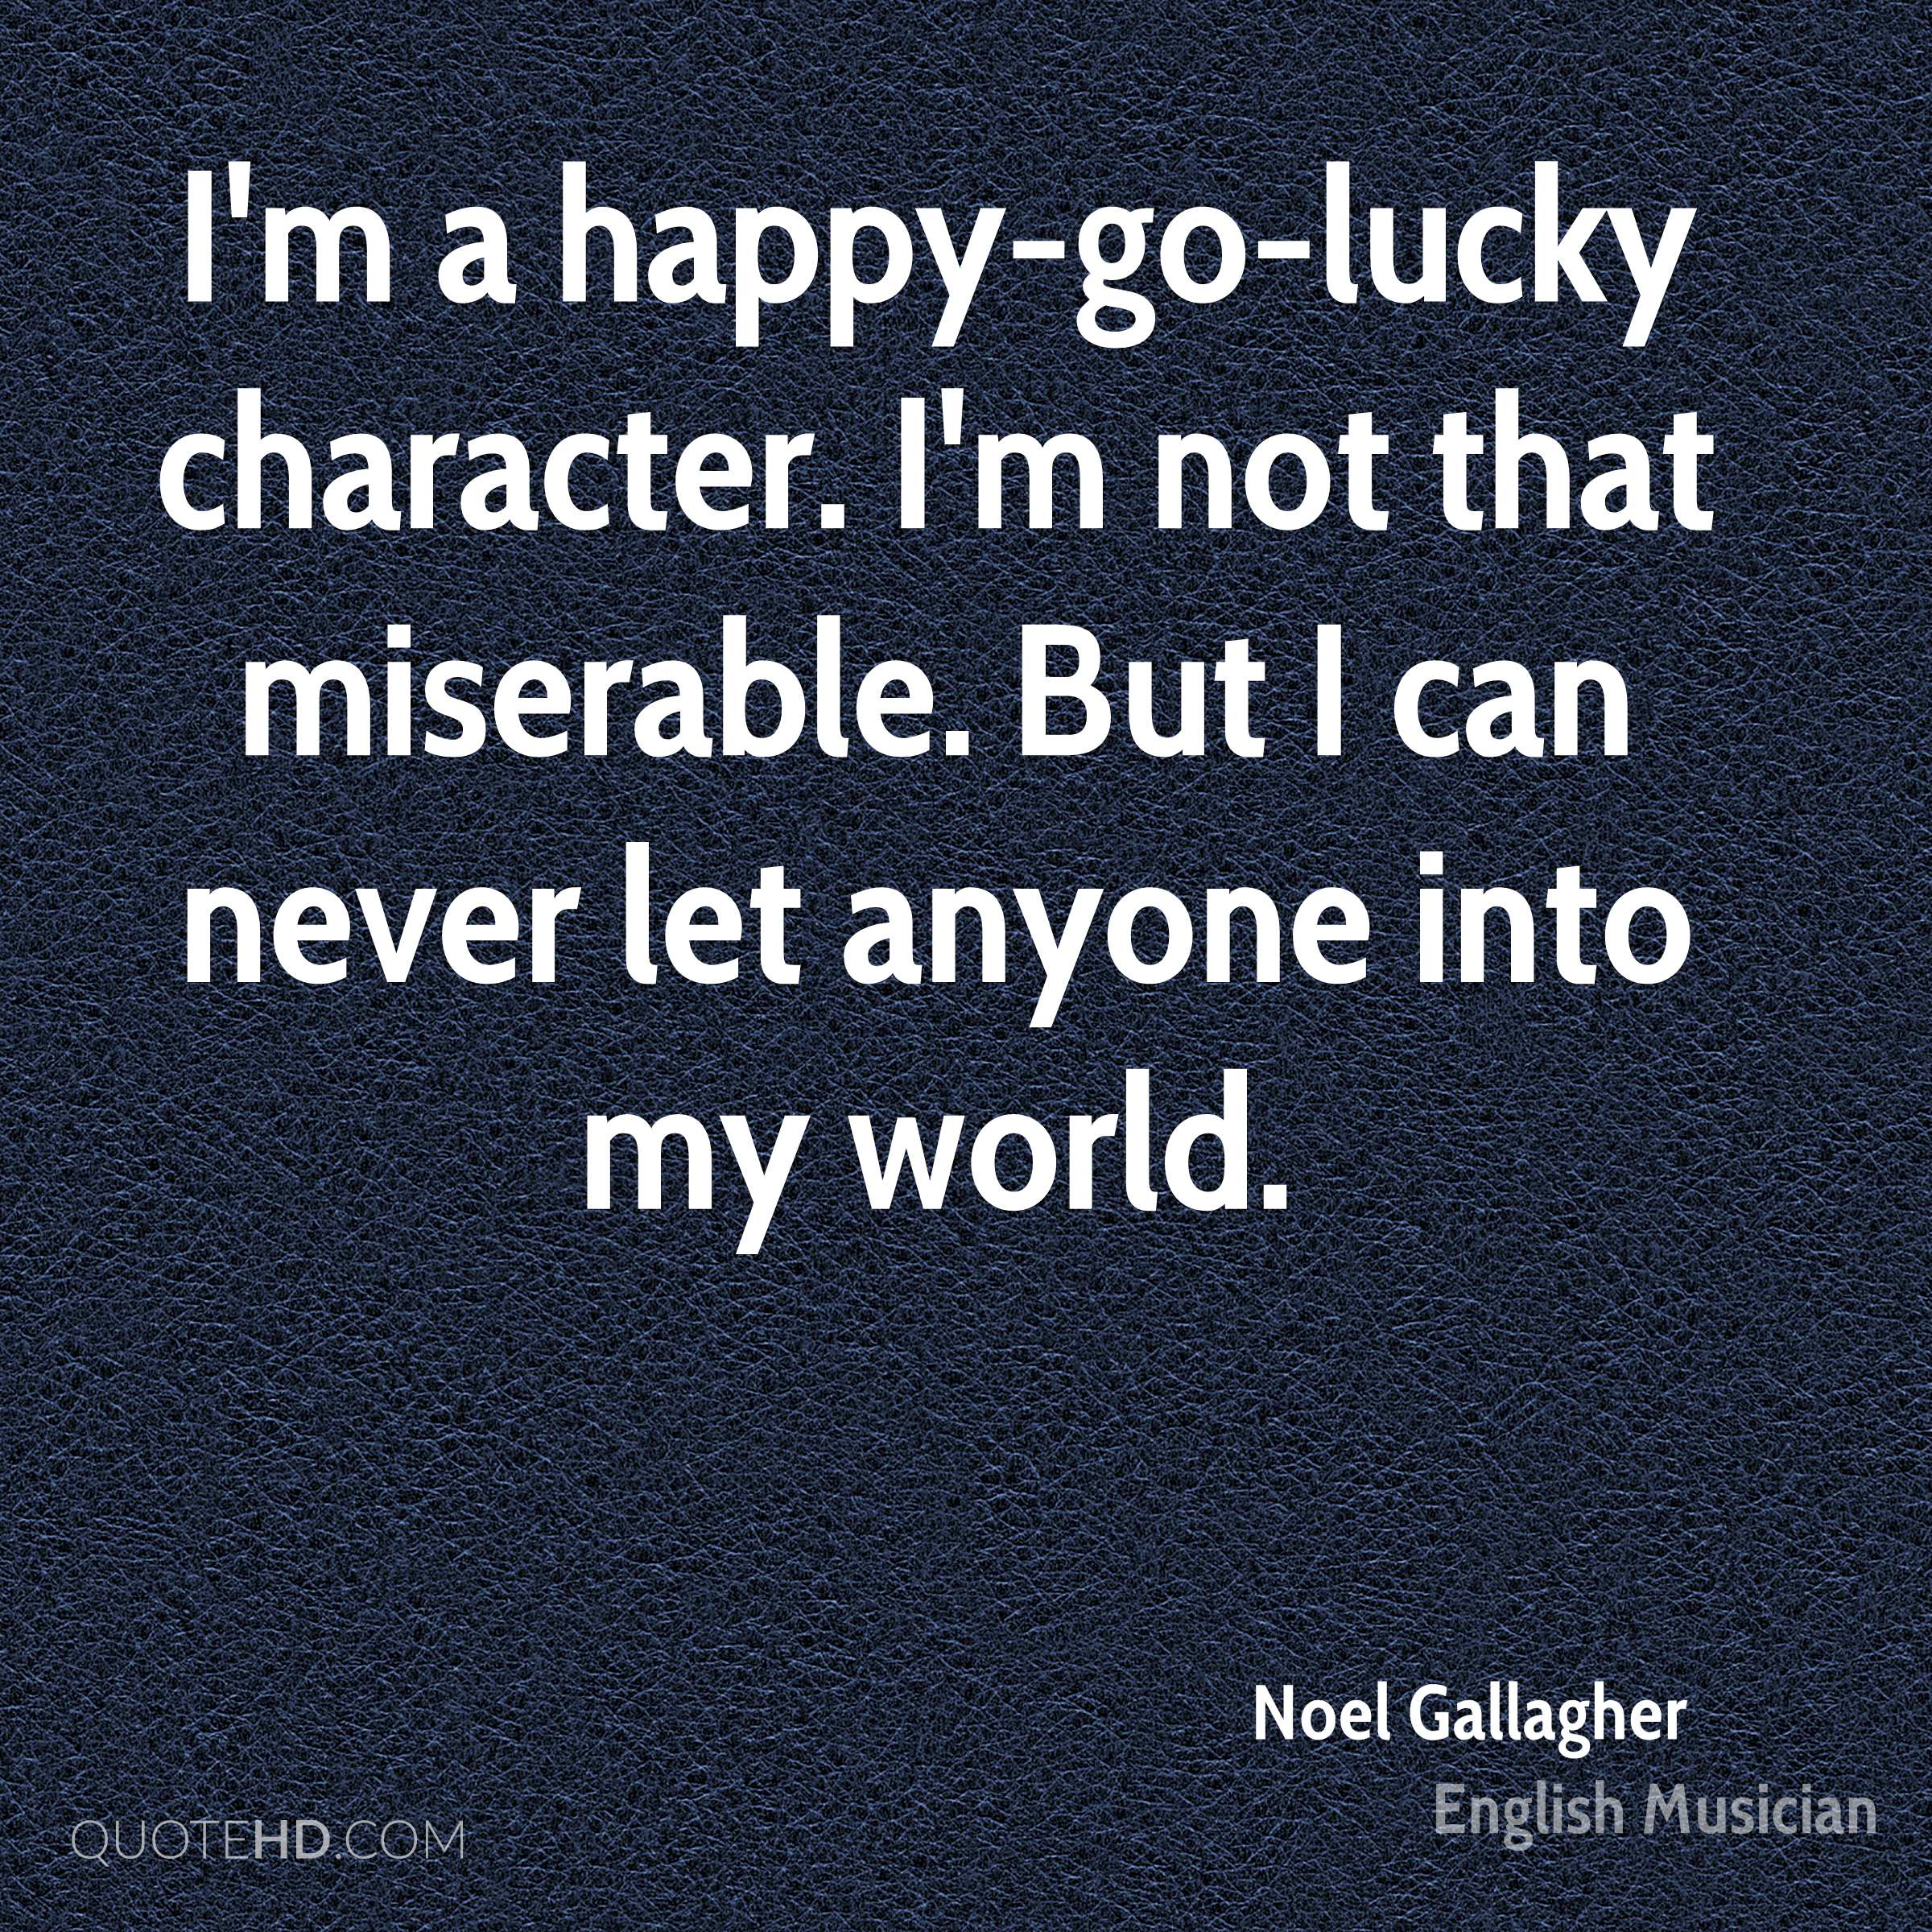 Happy Go Lucky Quotes Life: Noel Gallagher Quotes